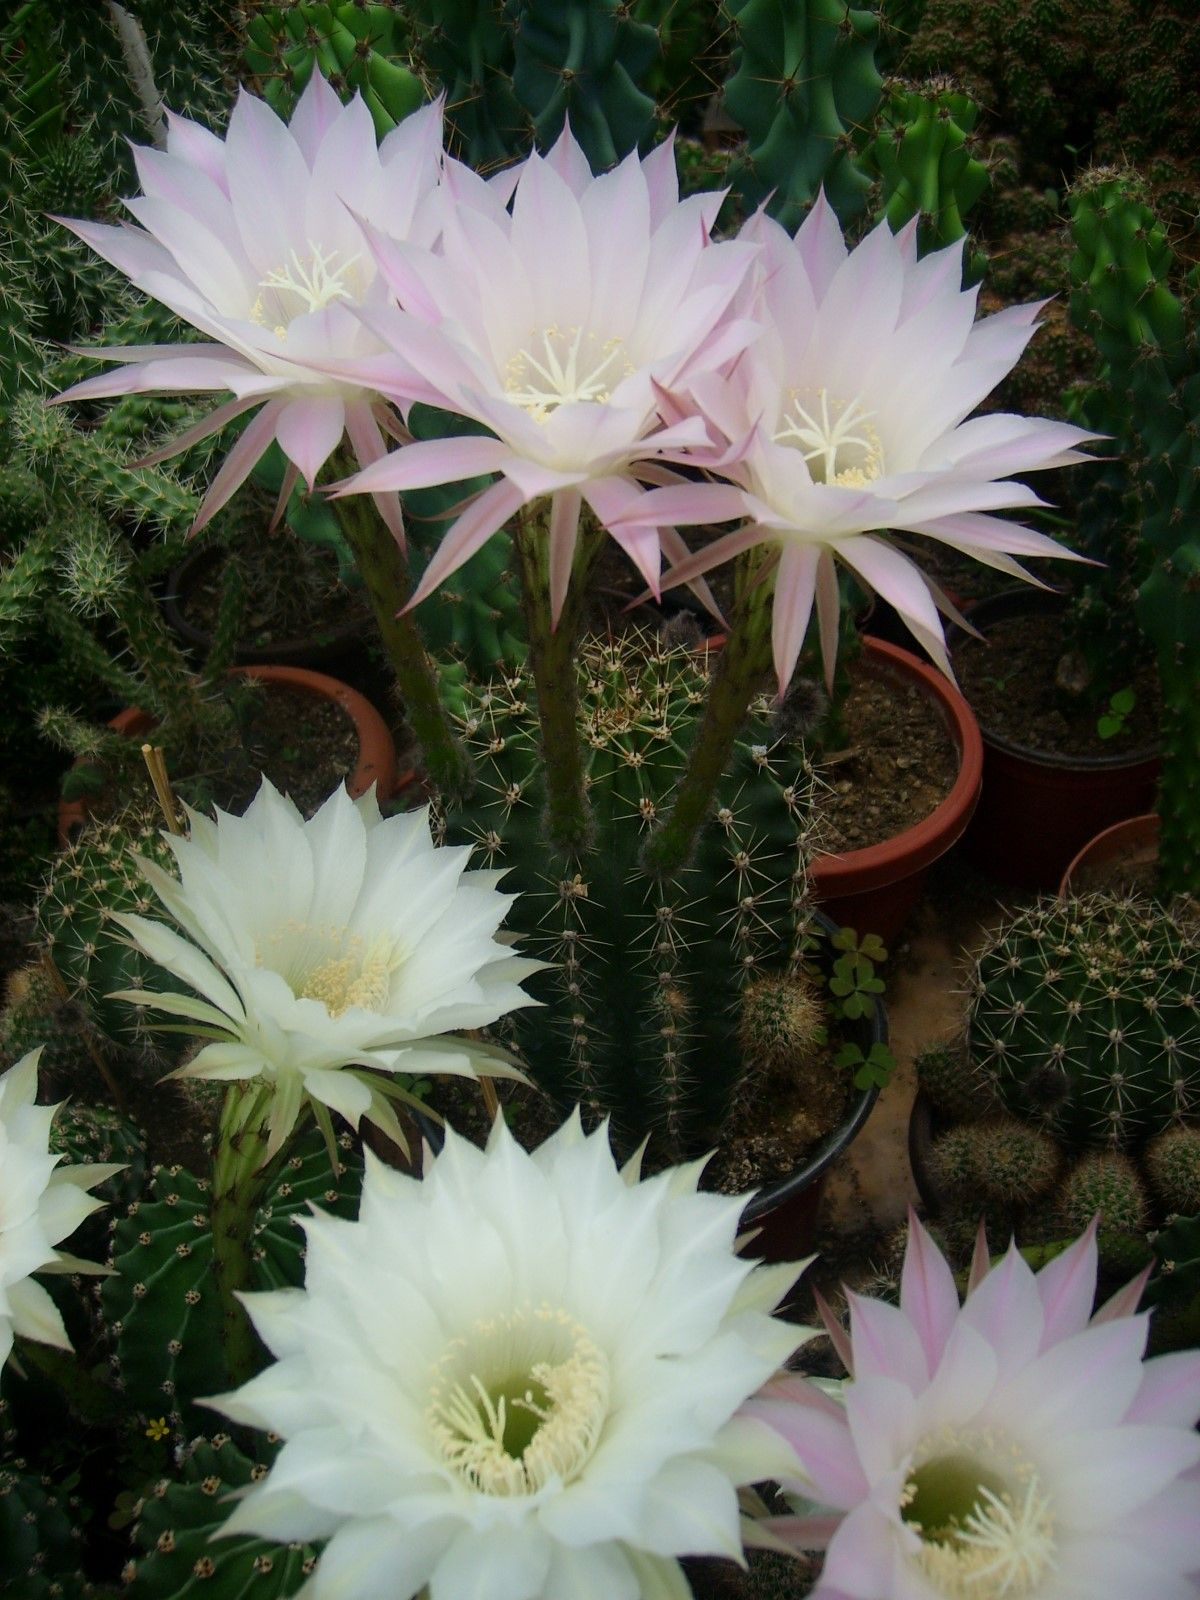 Echinopsis Oxygona (Easter Lily Cactus) Plant Characteristics And More Photos